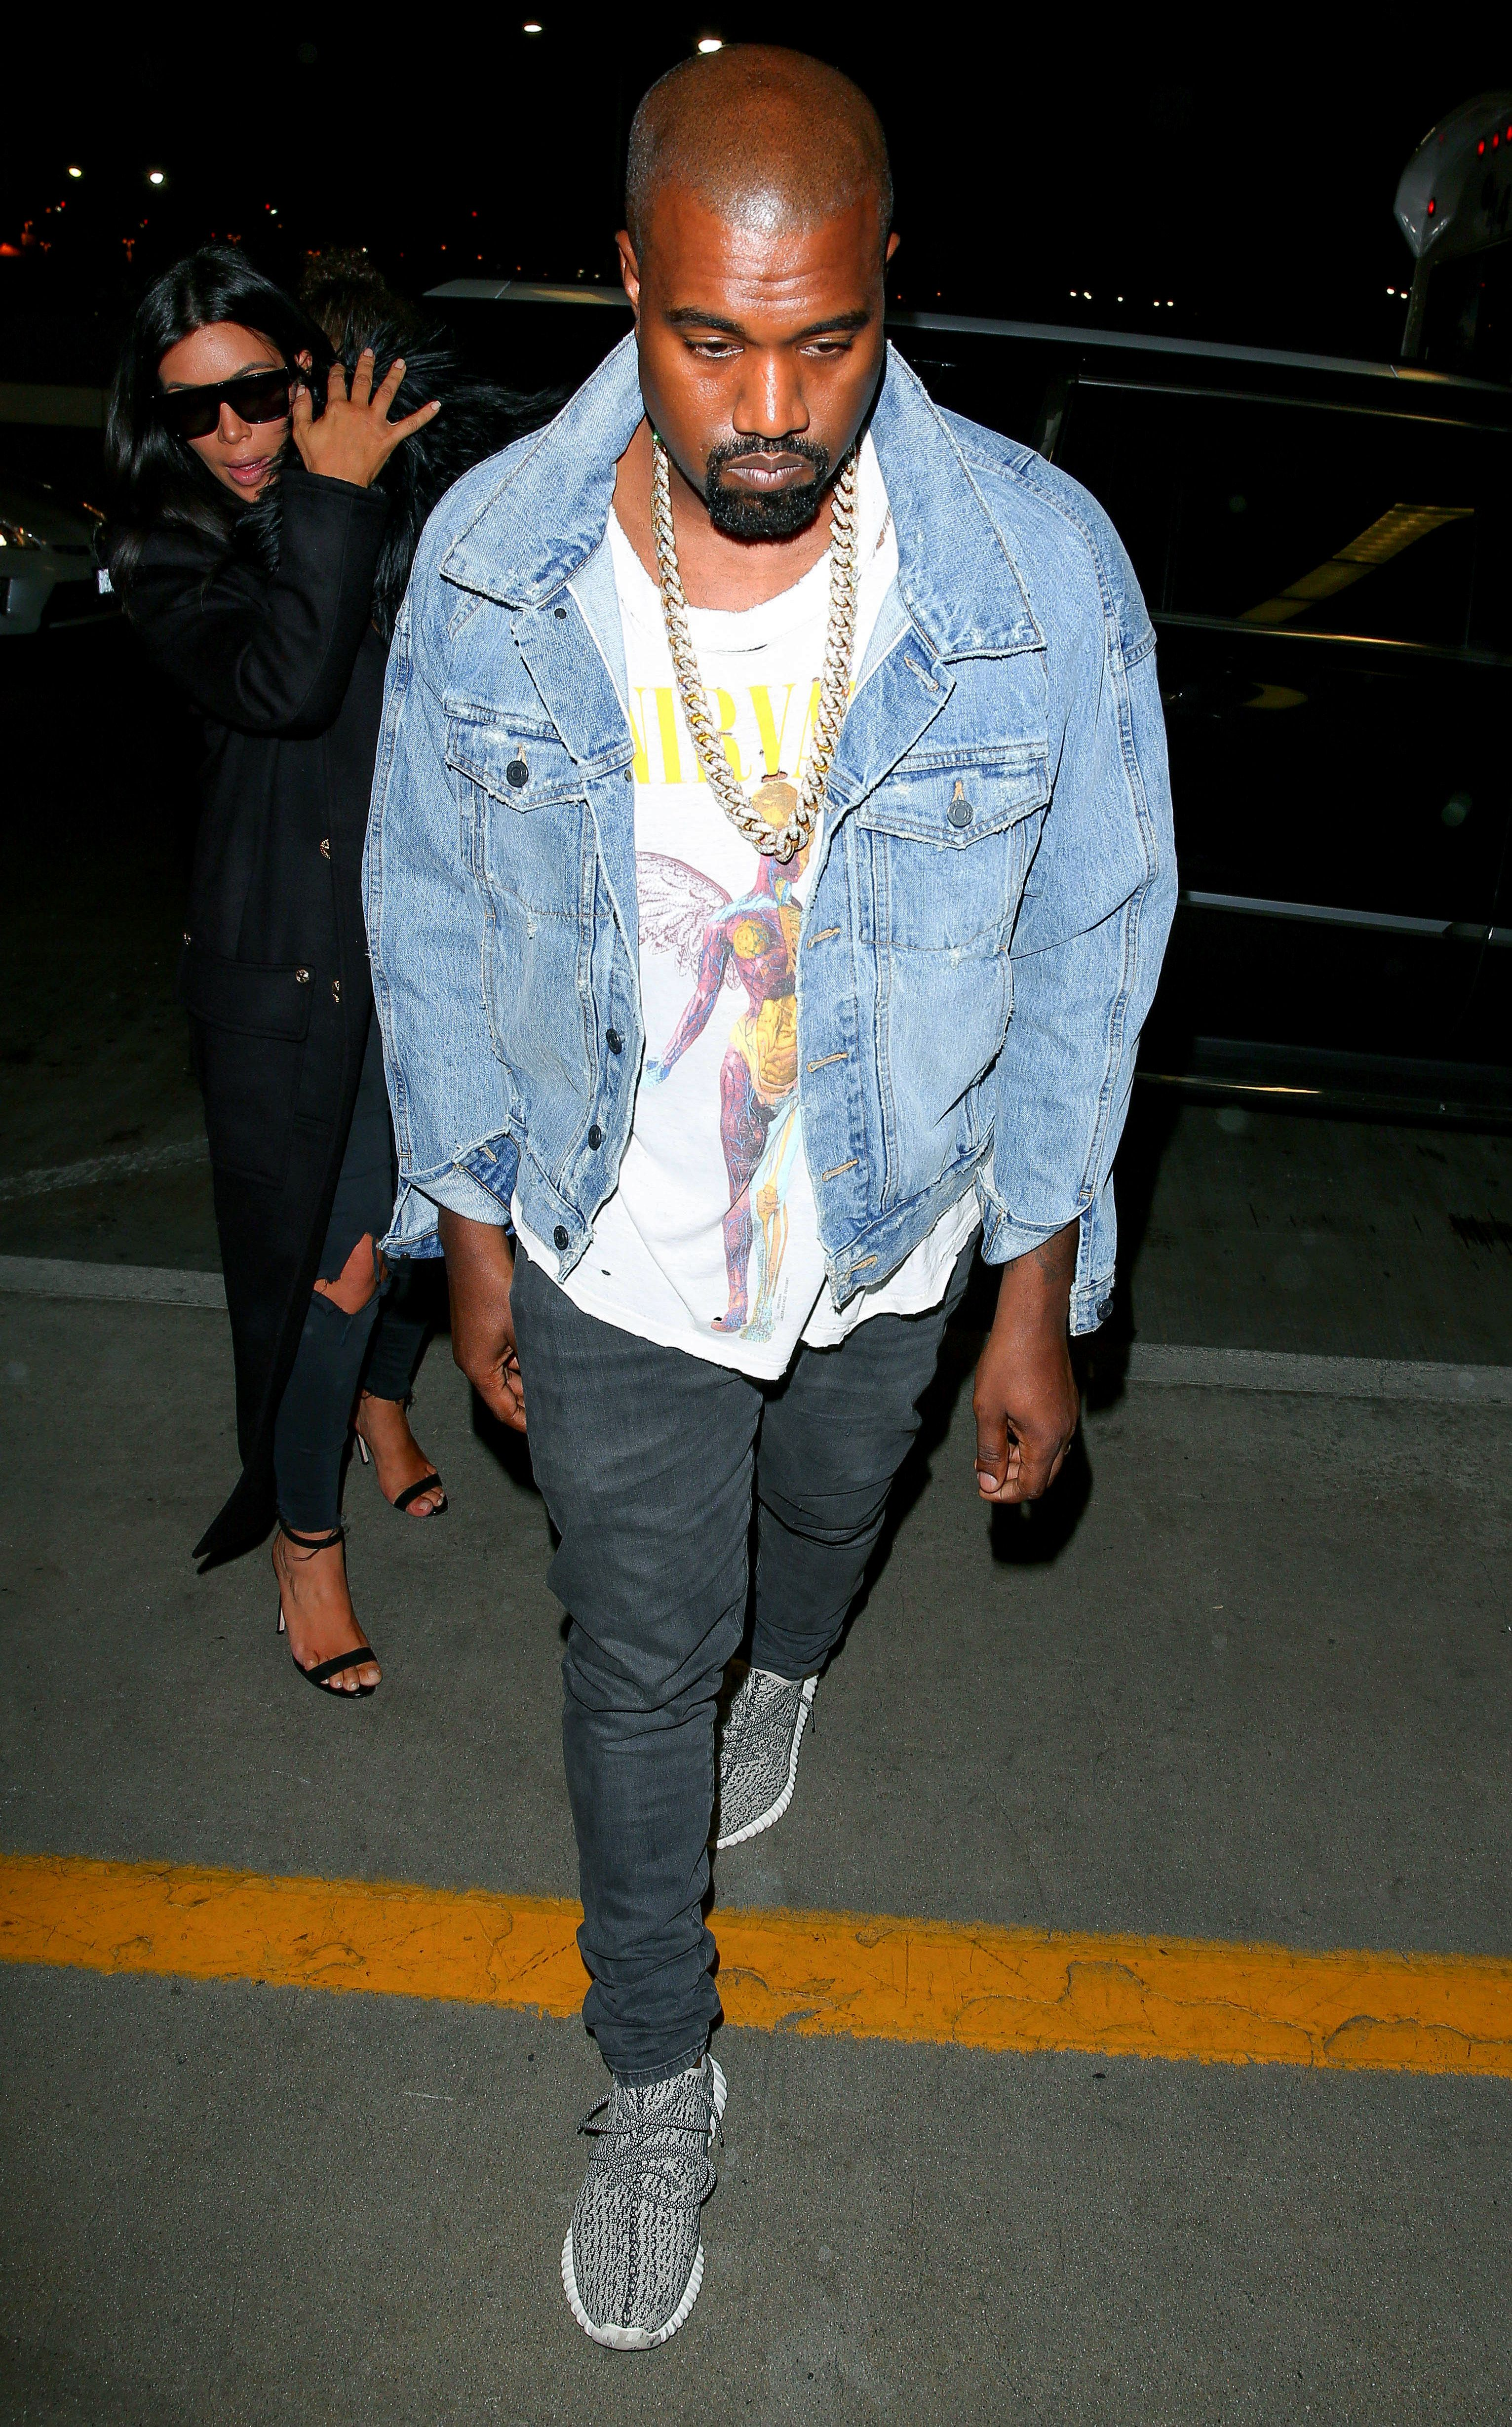 f2089e6455c The Kanye West Look Book